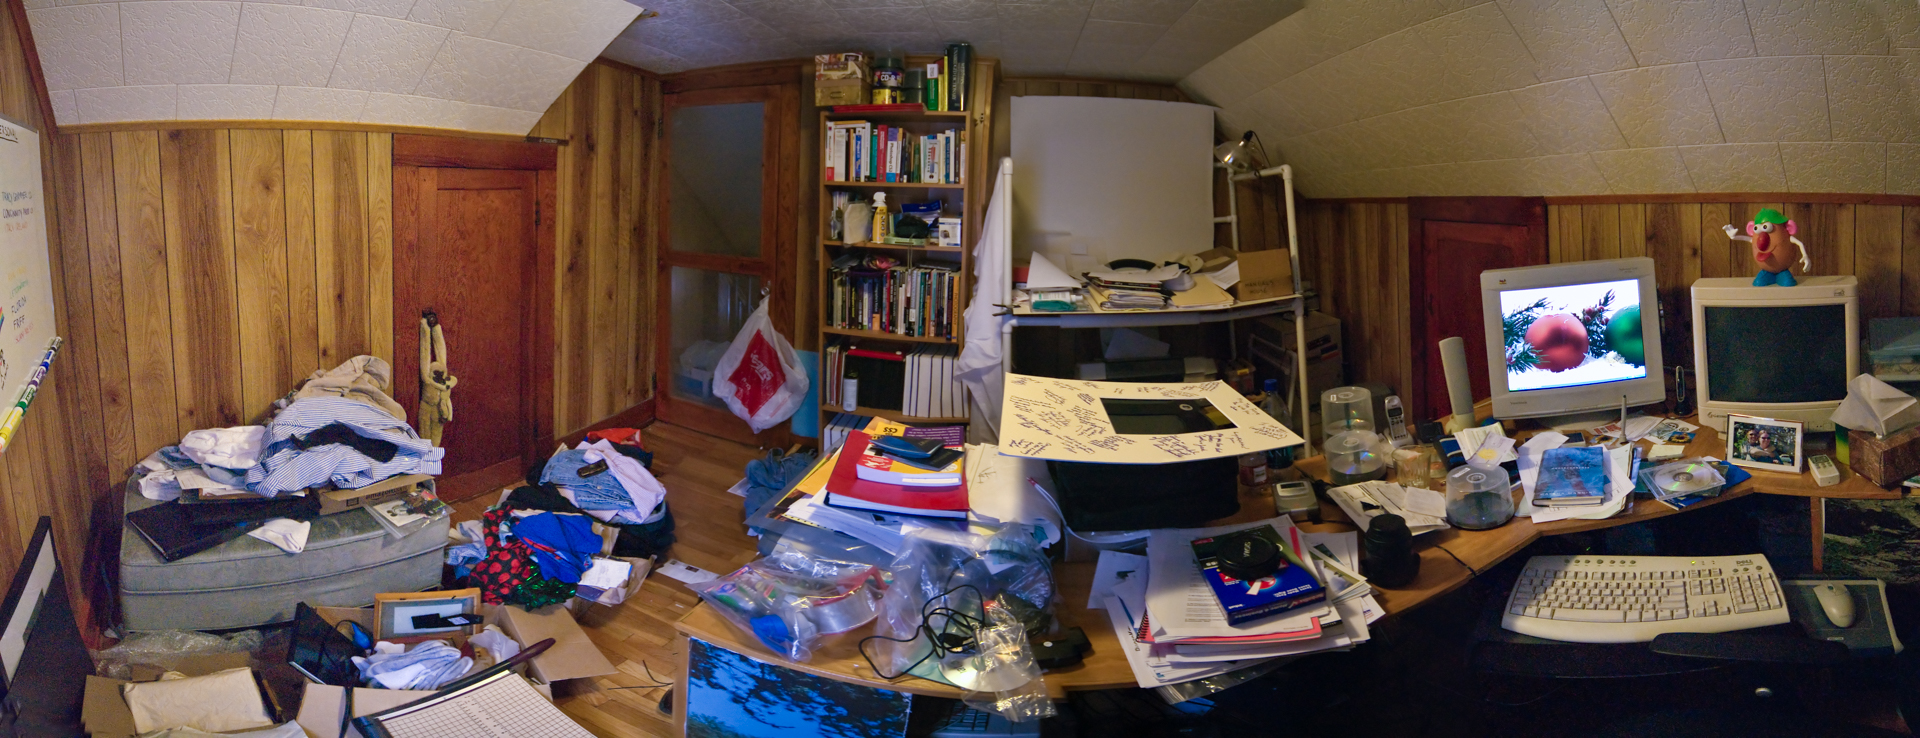 I Have Too Much Stuff This Is Likely Obvious Given That Am Writing About Minimalism And Decluttering Been For The Past Fif